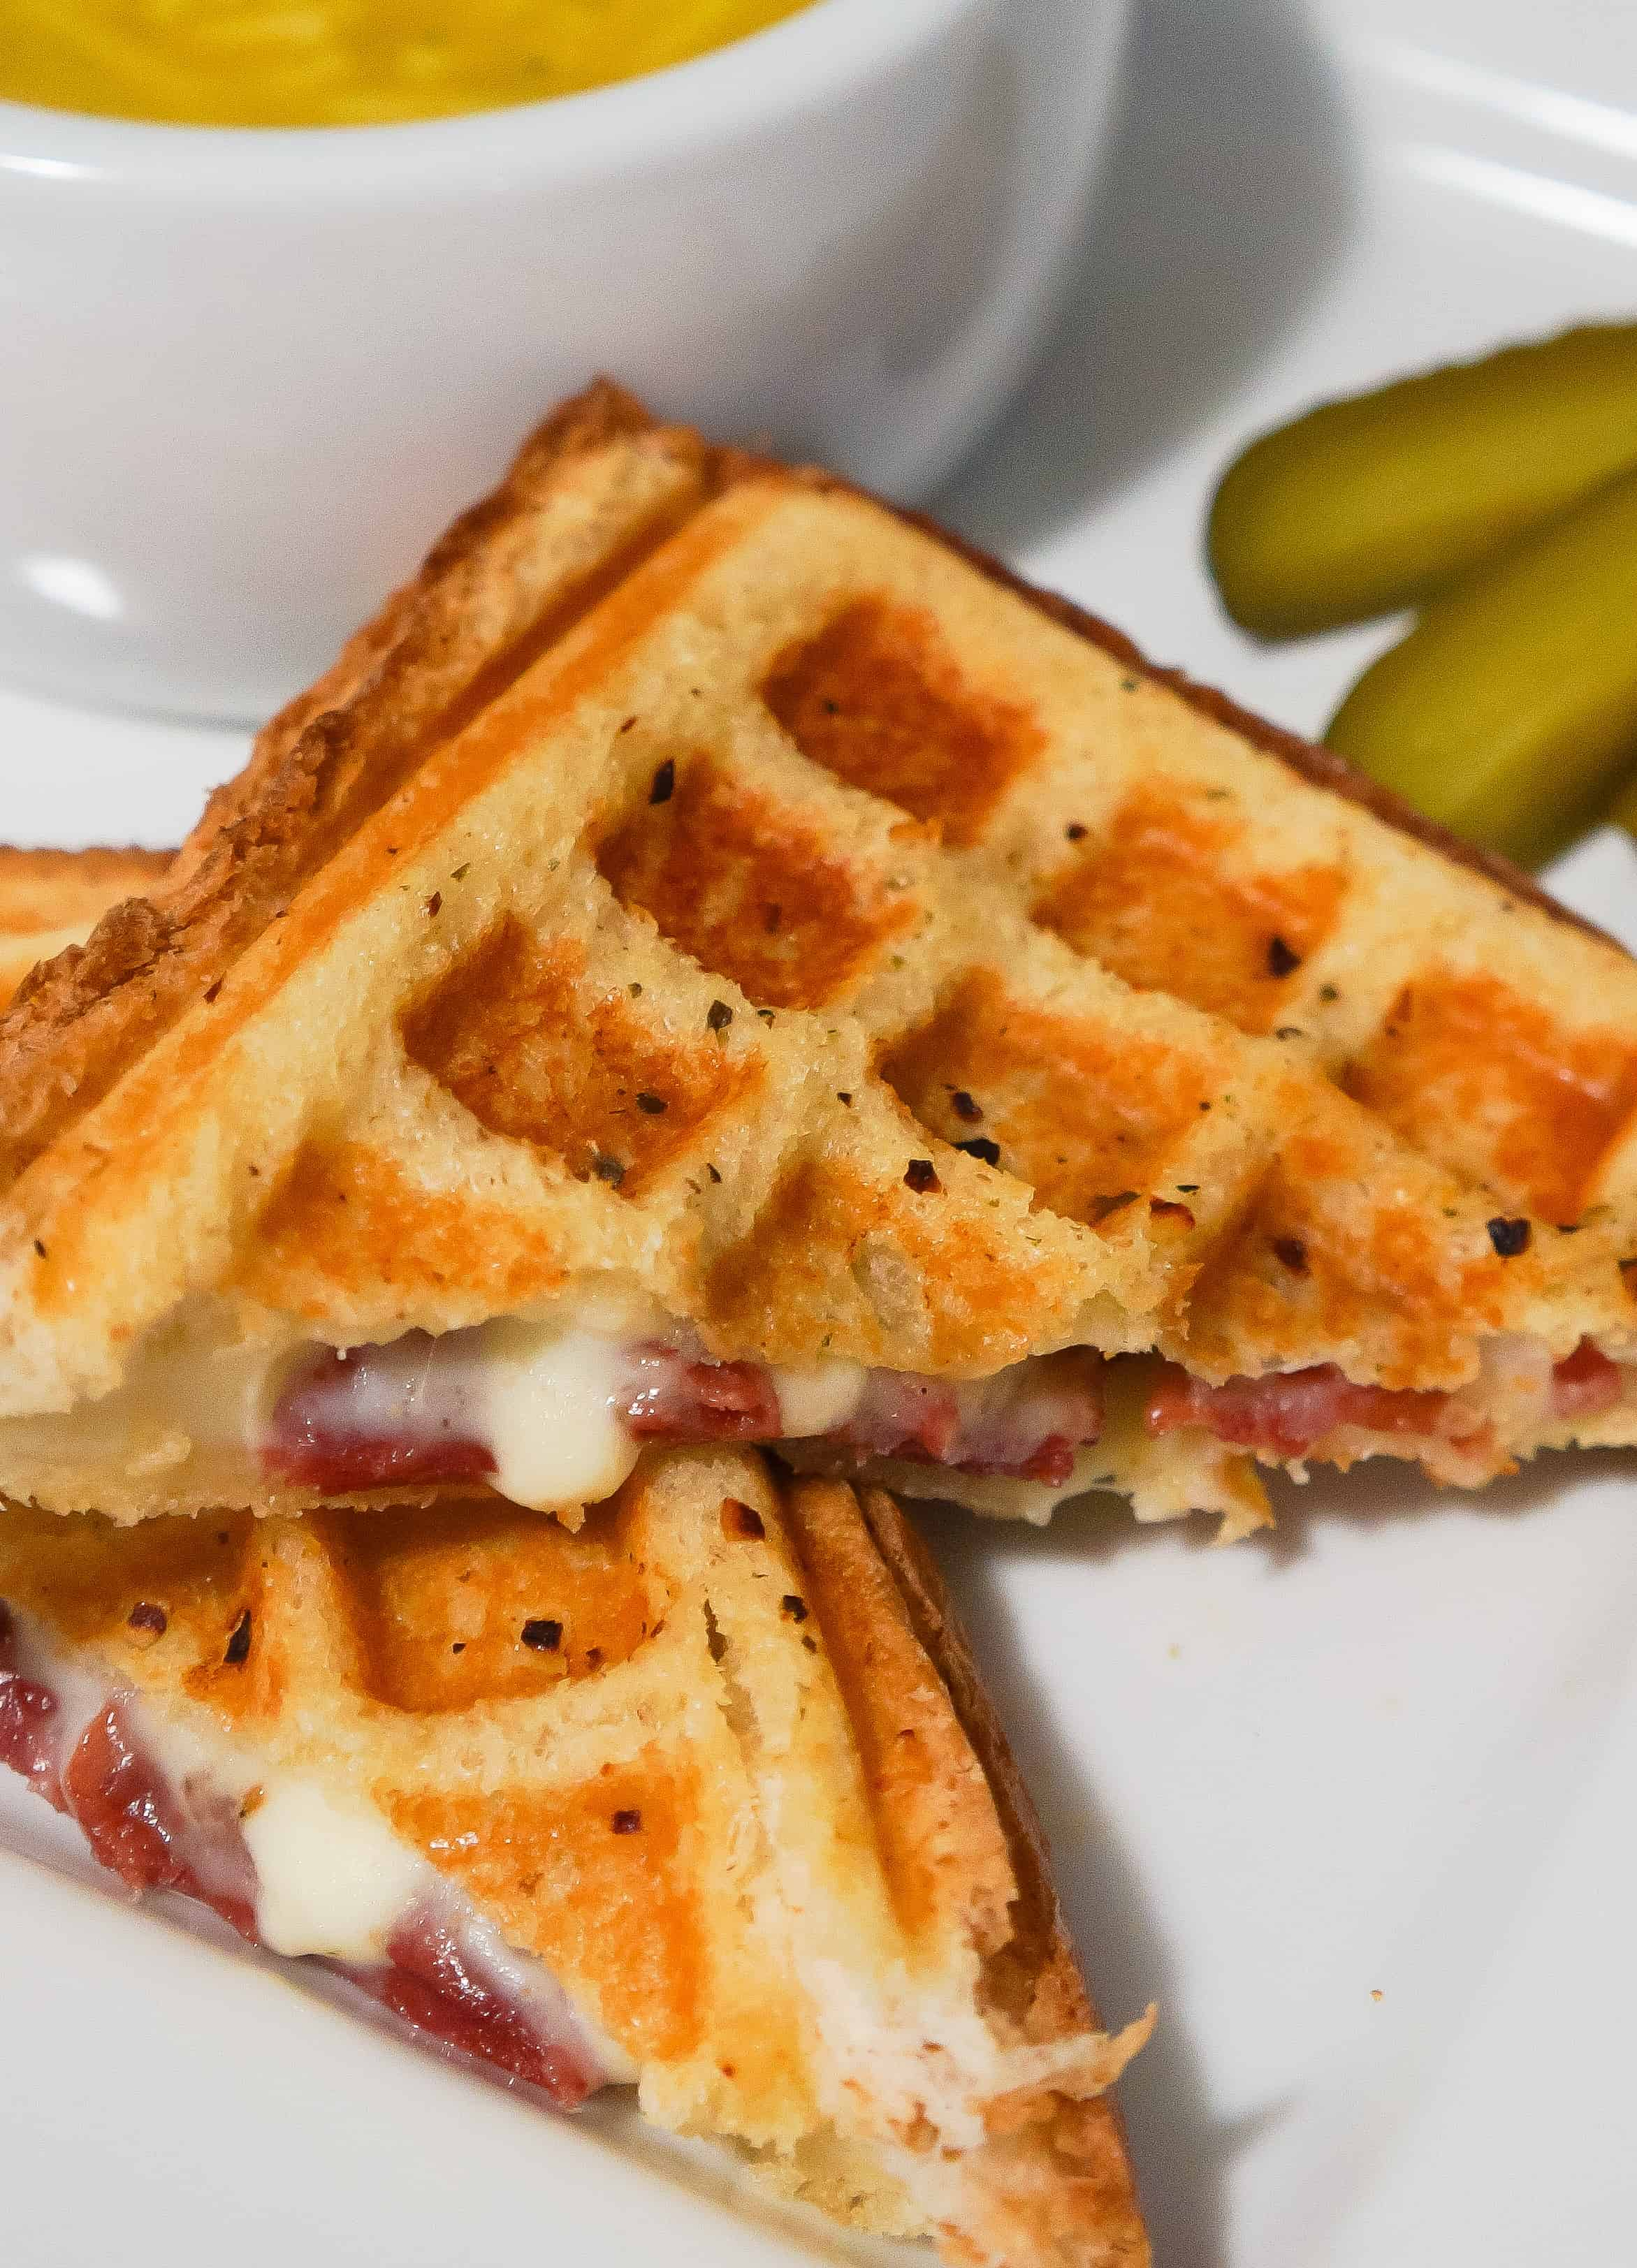 Grilled cheese sandwich with sauteed onions, corned beef and Havarti cheese cooked in a waffle maker. This waffled grilled cheese is perfect for lunch or a quick dinner.